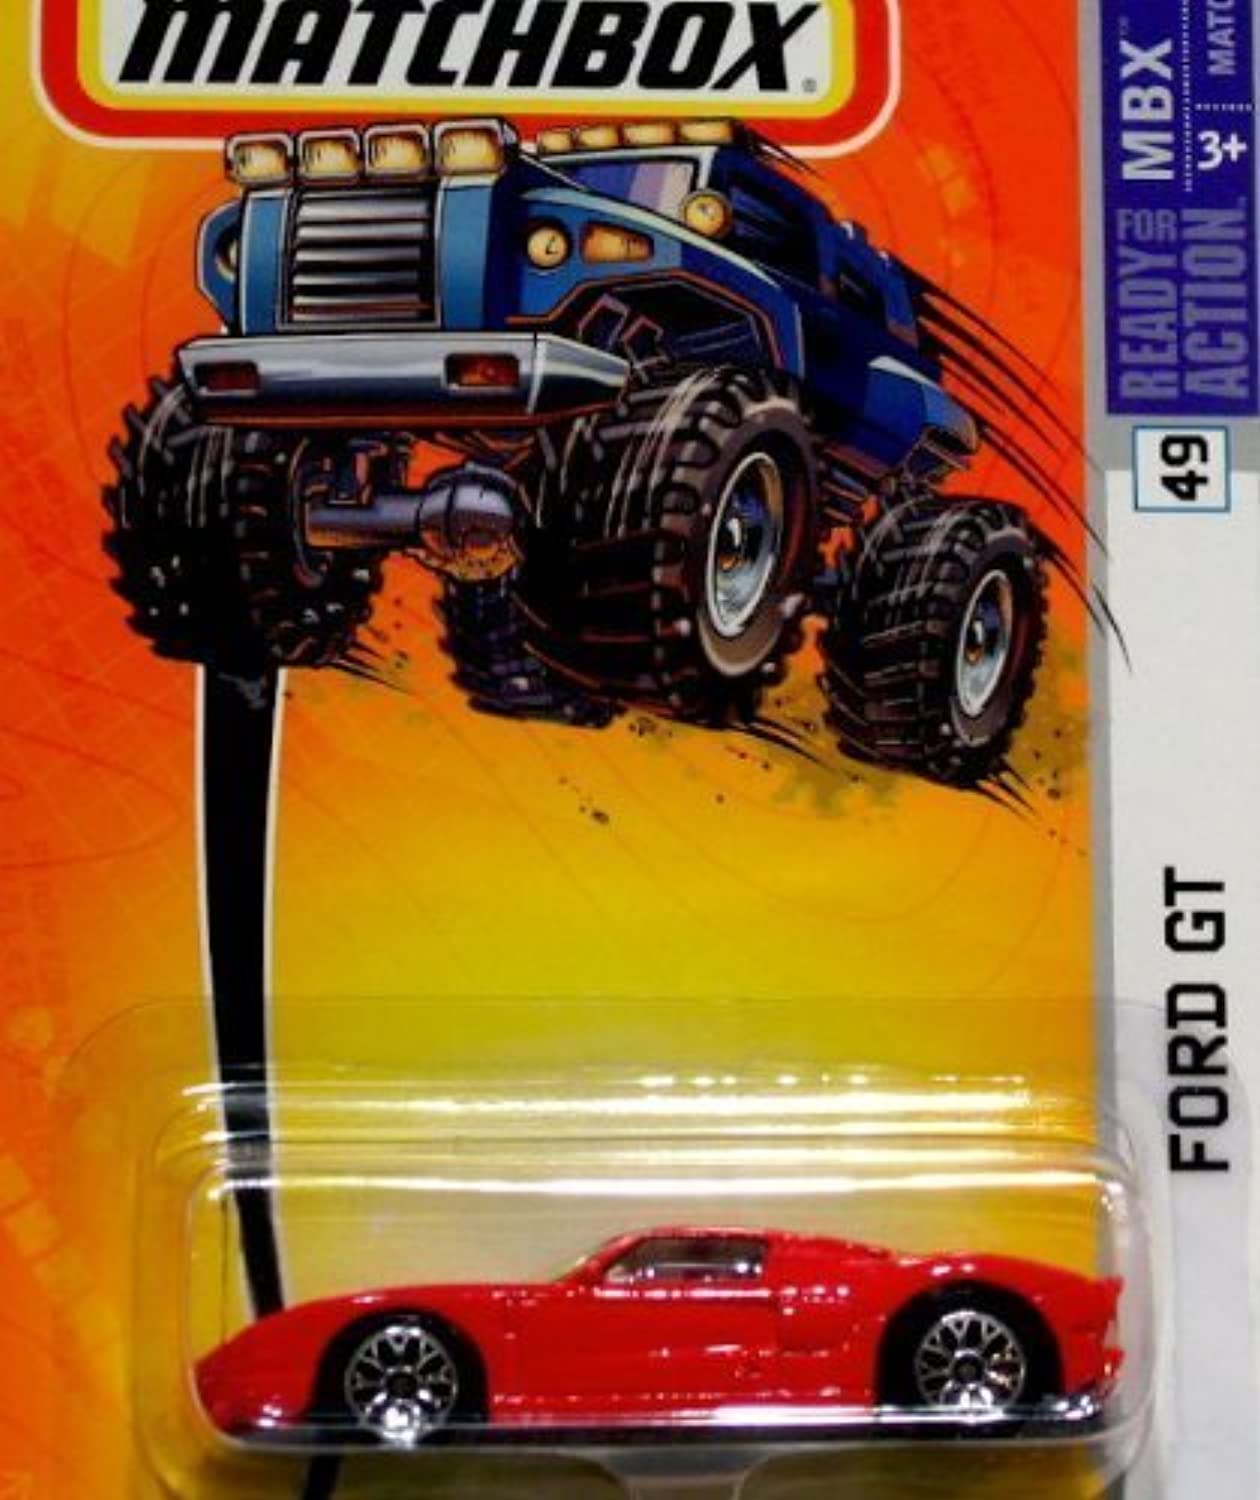 MATCHBOX FORD GT 49 MBX METAL (RED WITH WHITE RACING STRIPES) by Hot Wheels